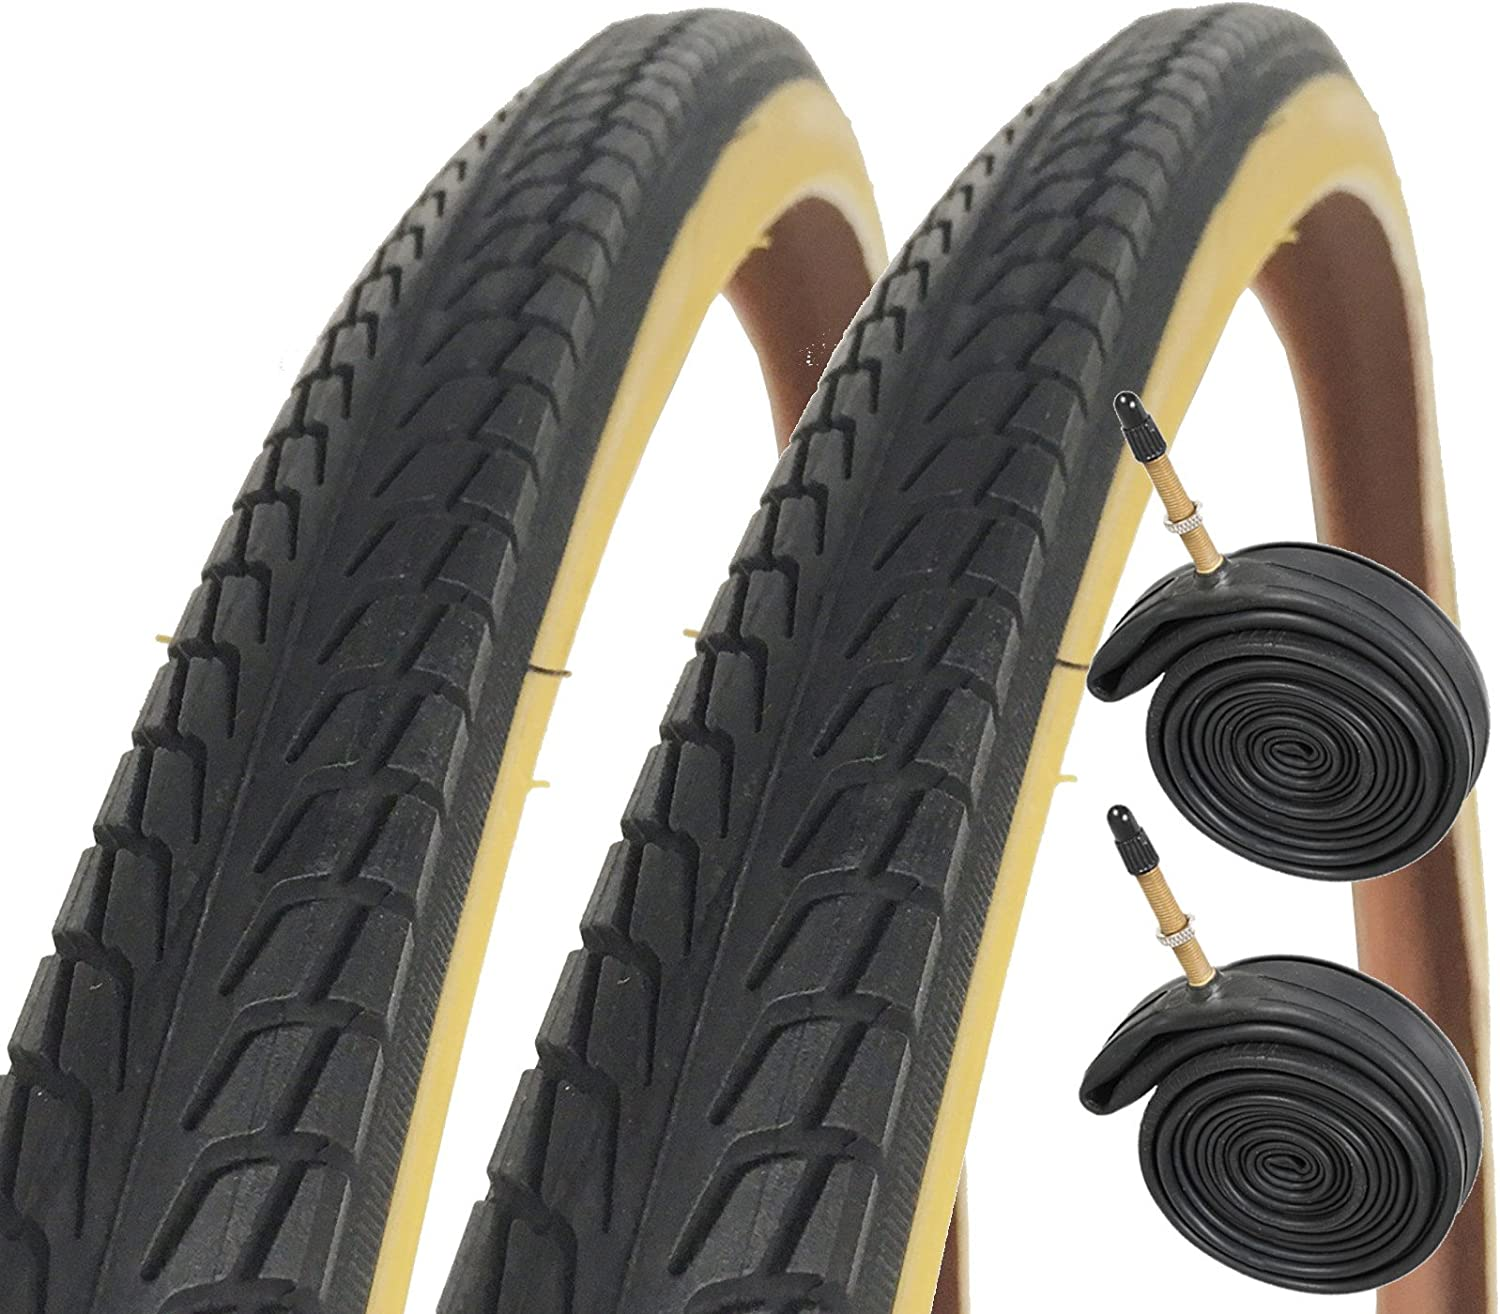 24x1.95 Inch Raleigh T1815 Cross Lite Cycle Tyre Black